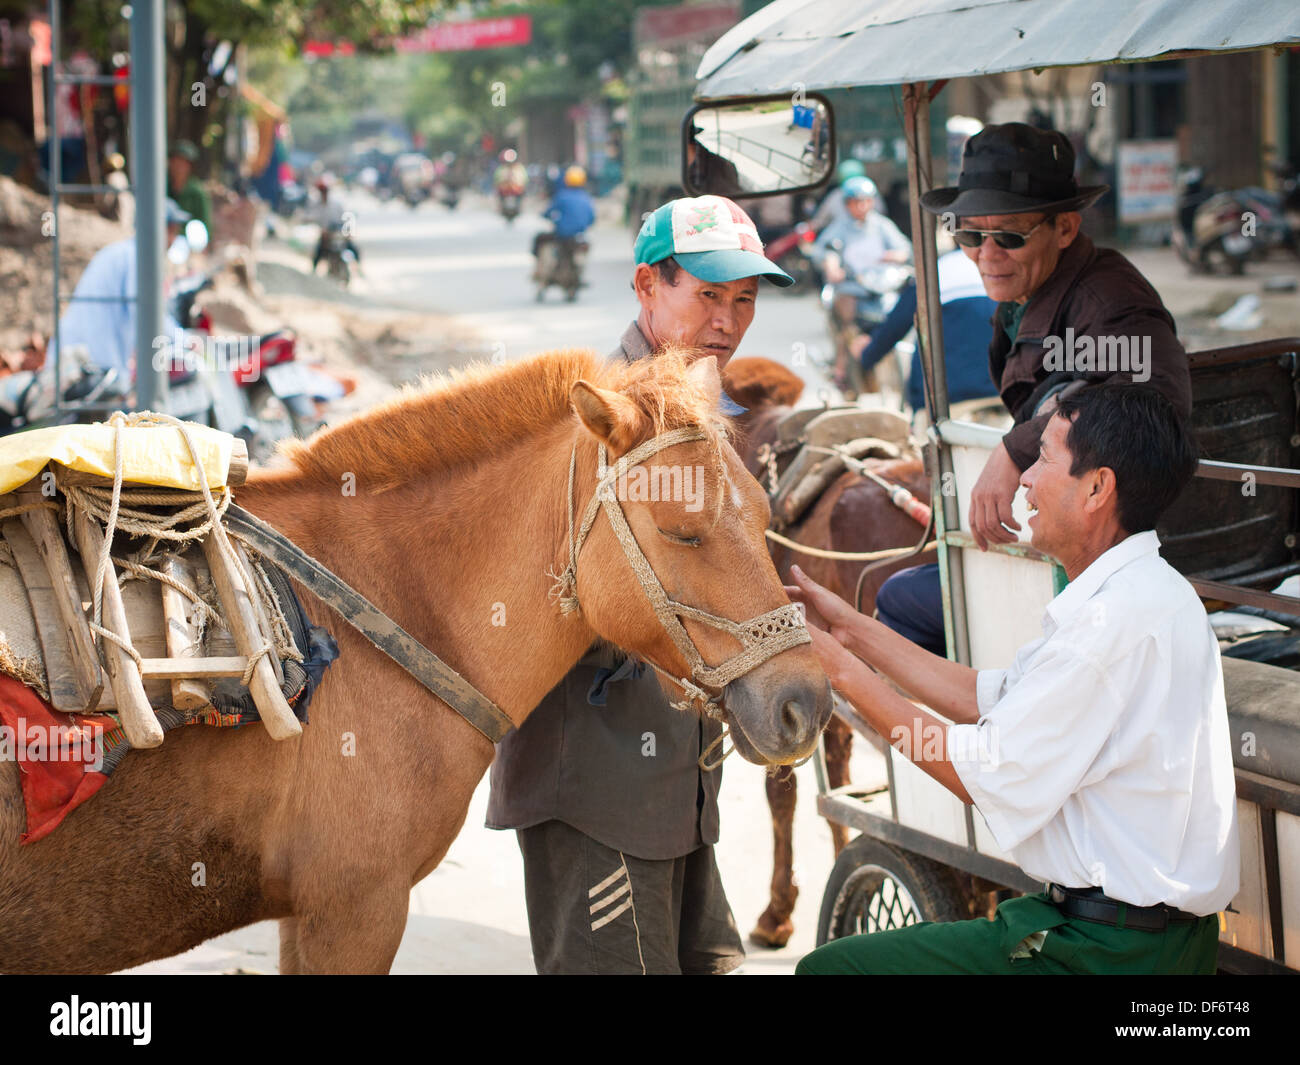 Hmong men and a packhorse on the streets of Bac Ha, Lao Cai, Vietnam. - Stock Image